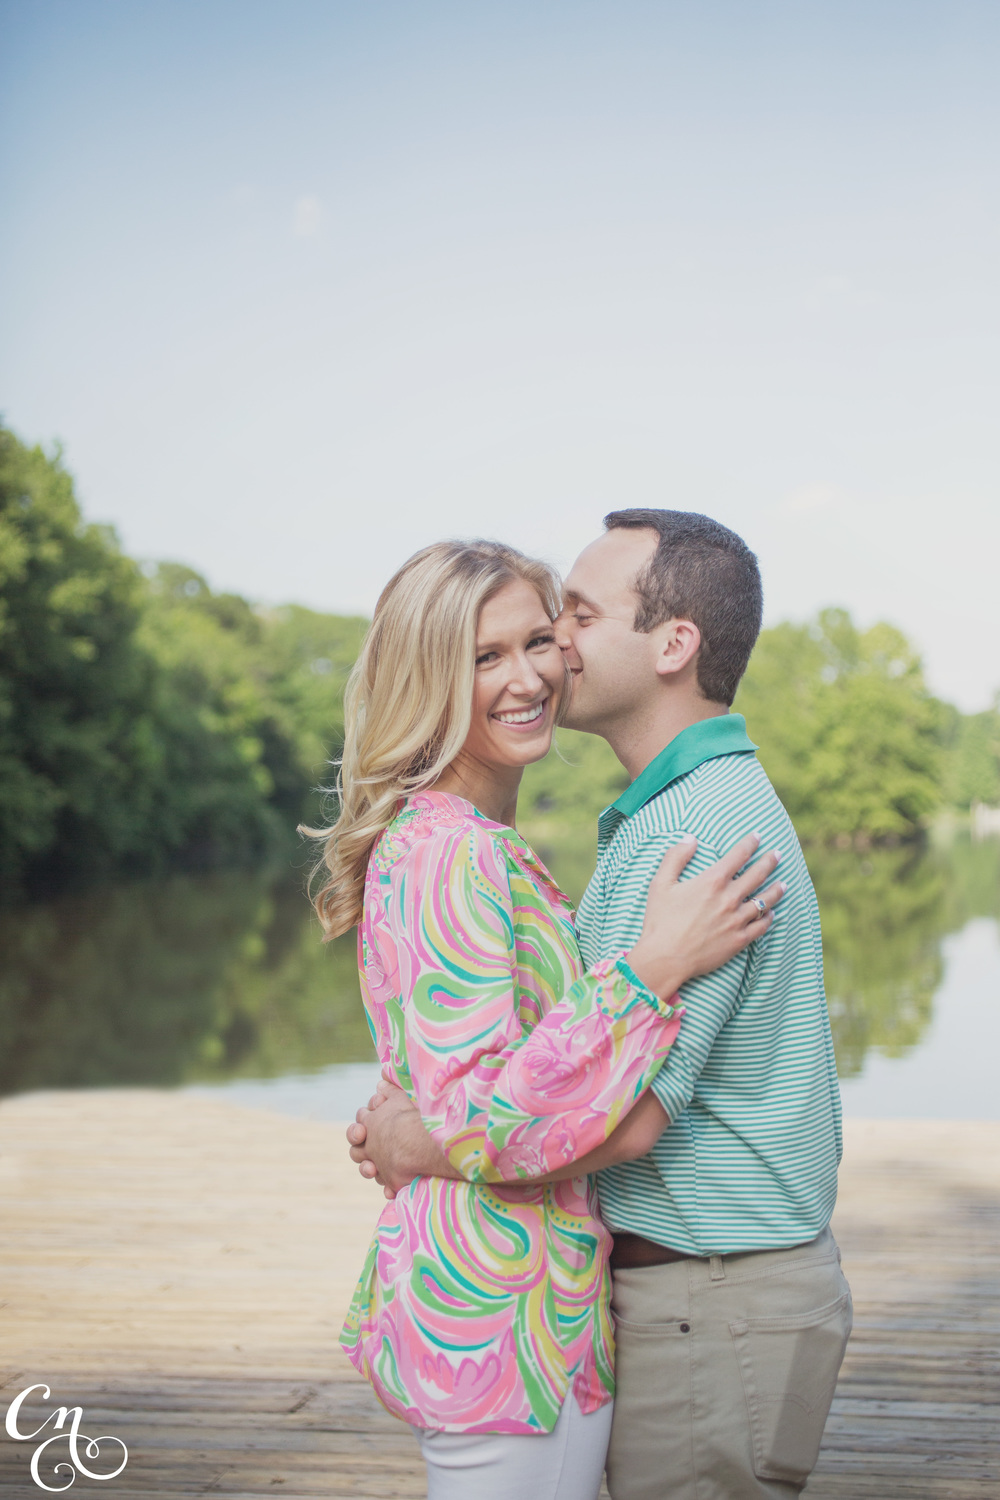 CNPKatieEngagement_7166_WM.jpg